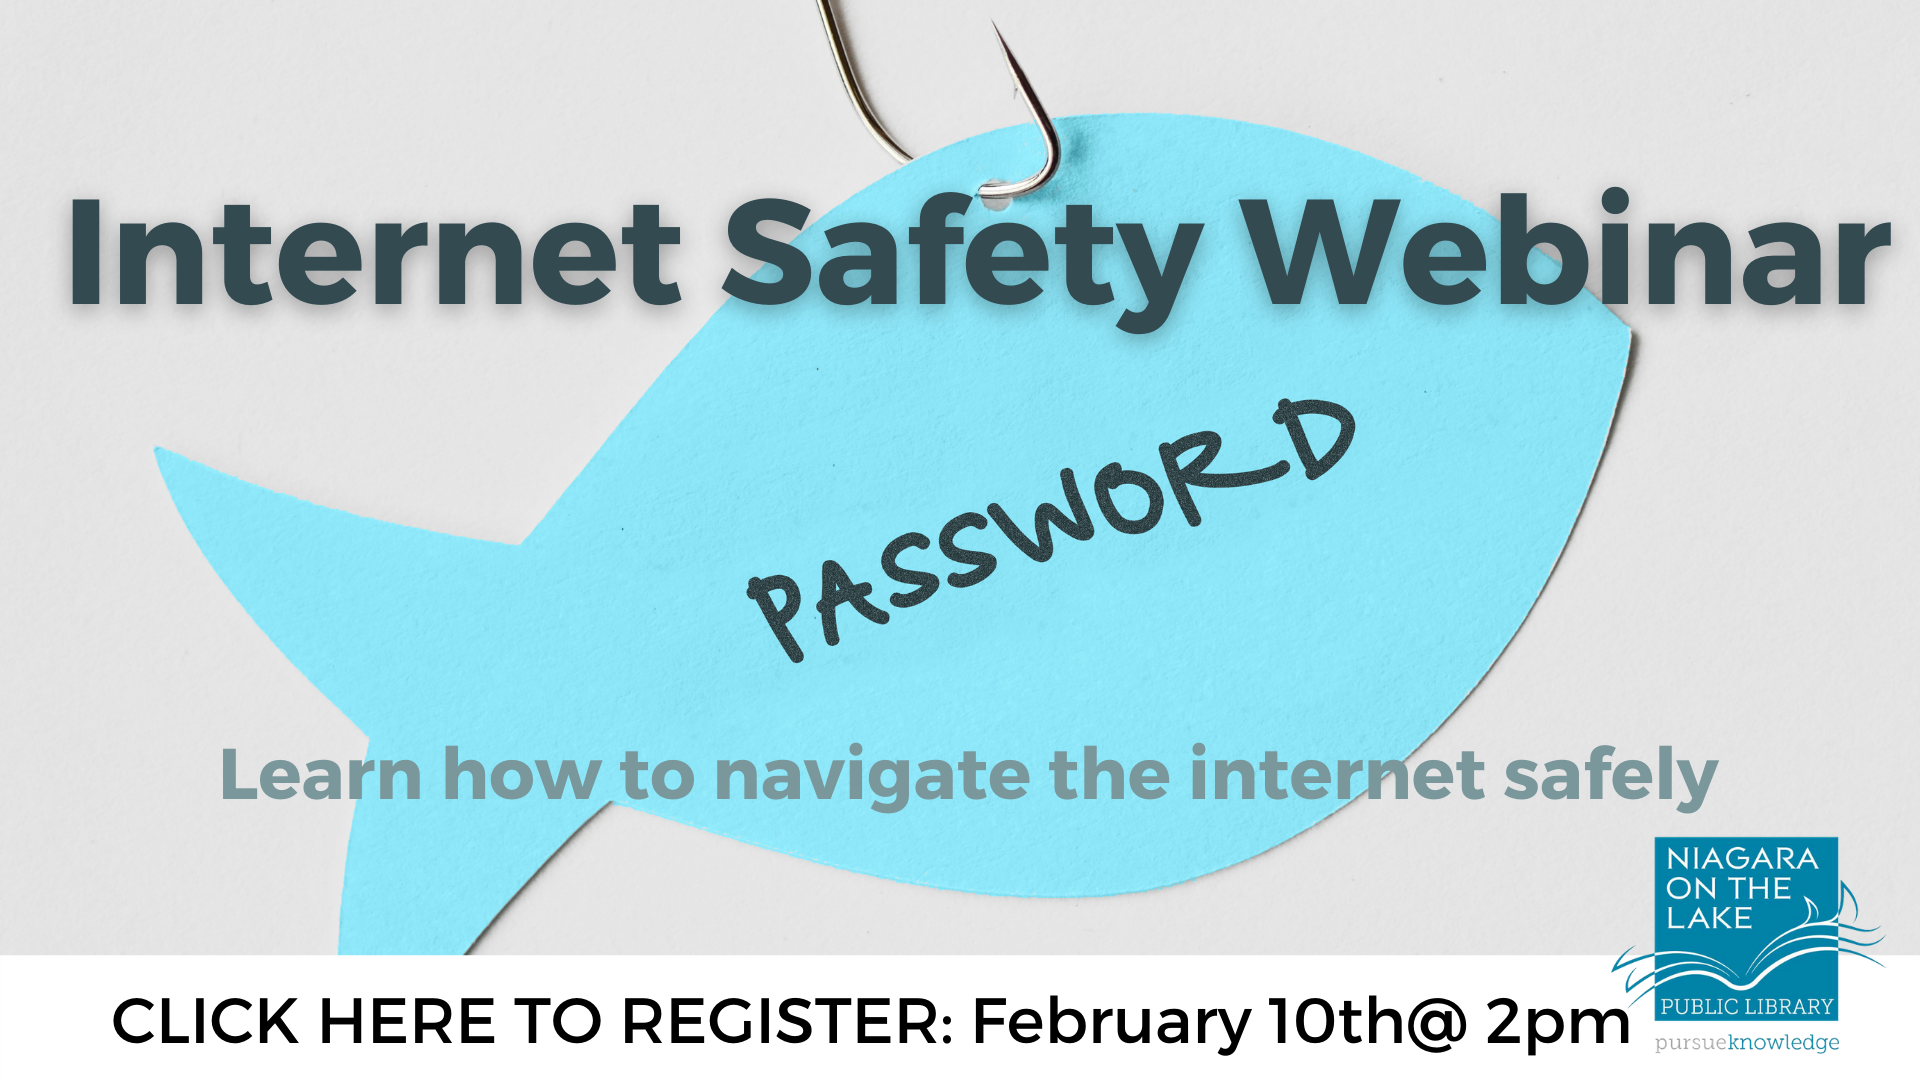 Internet Safety Webinar